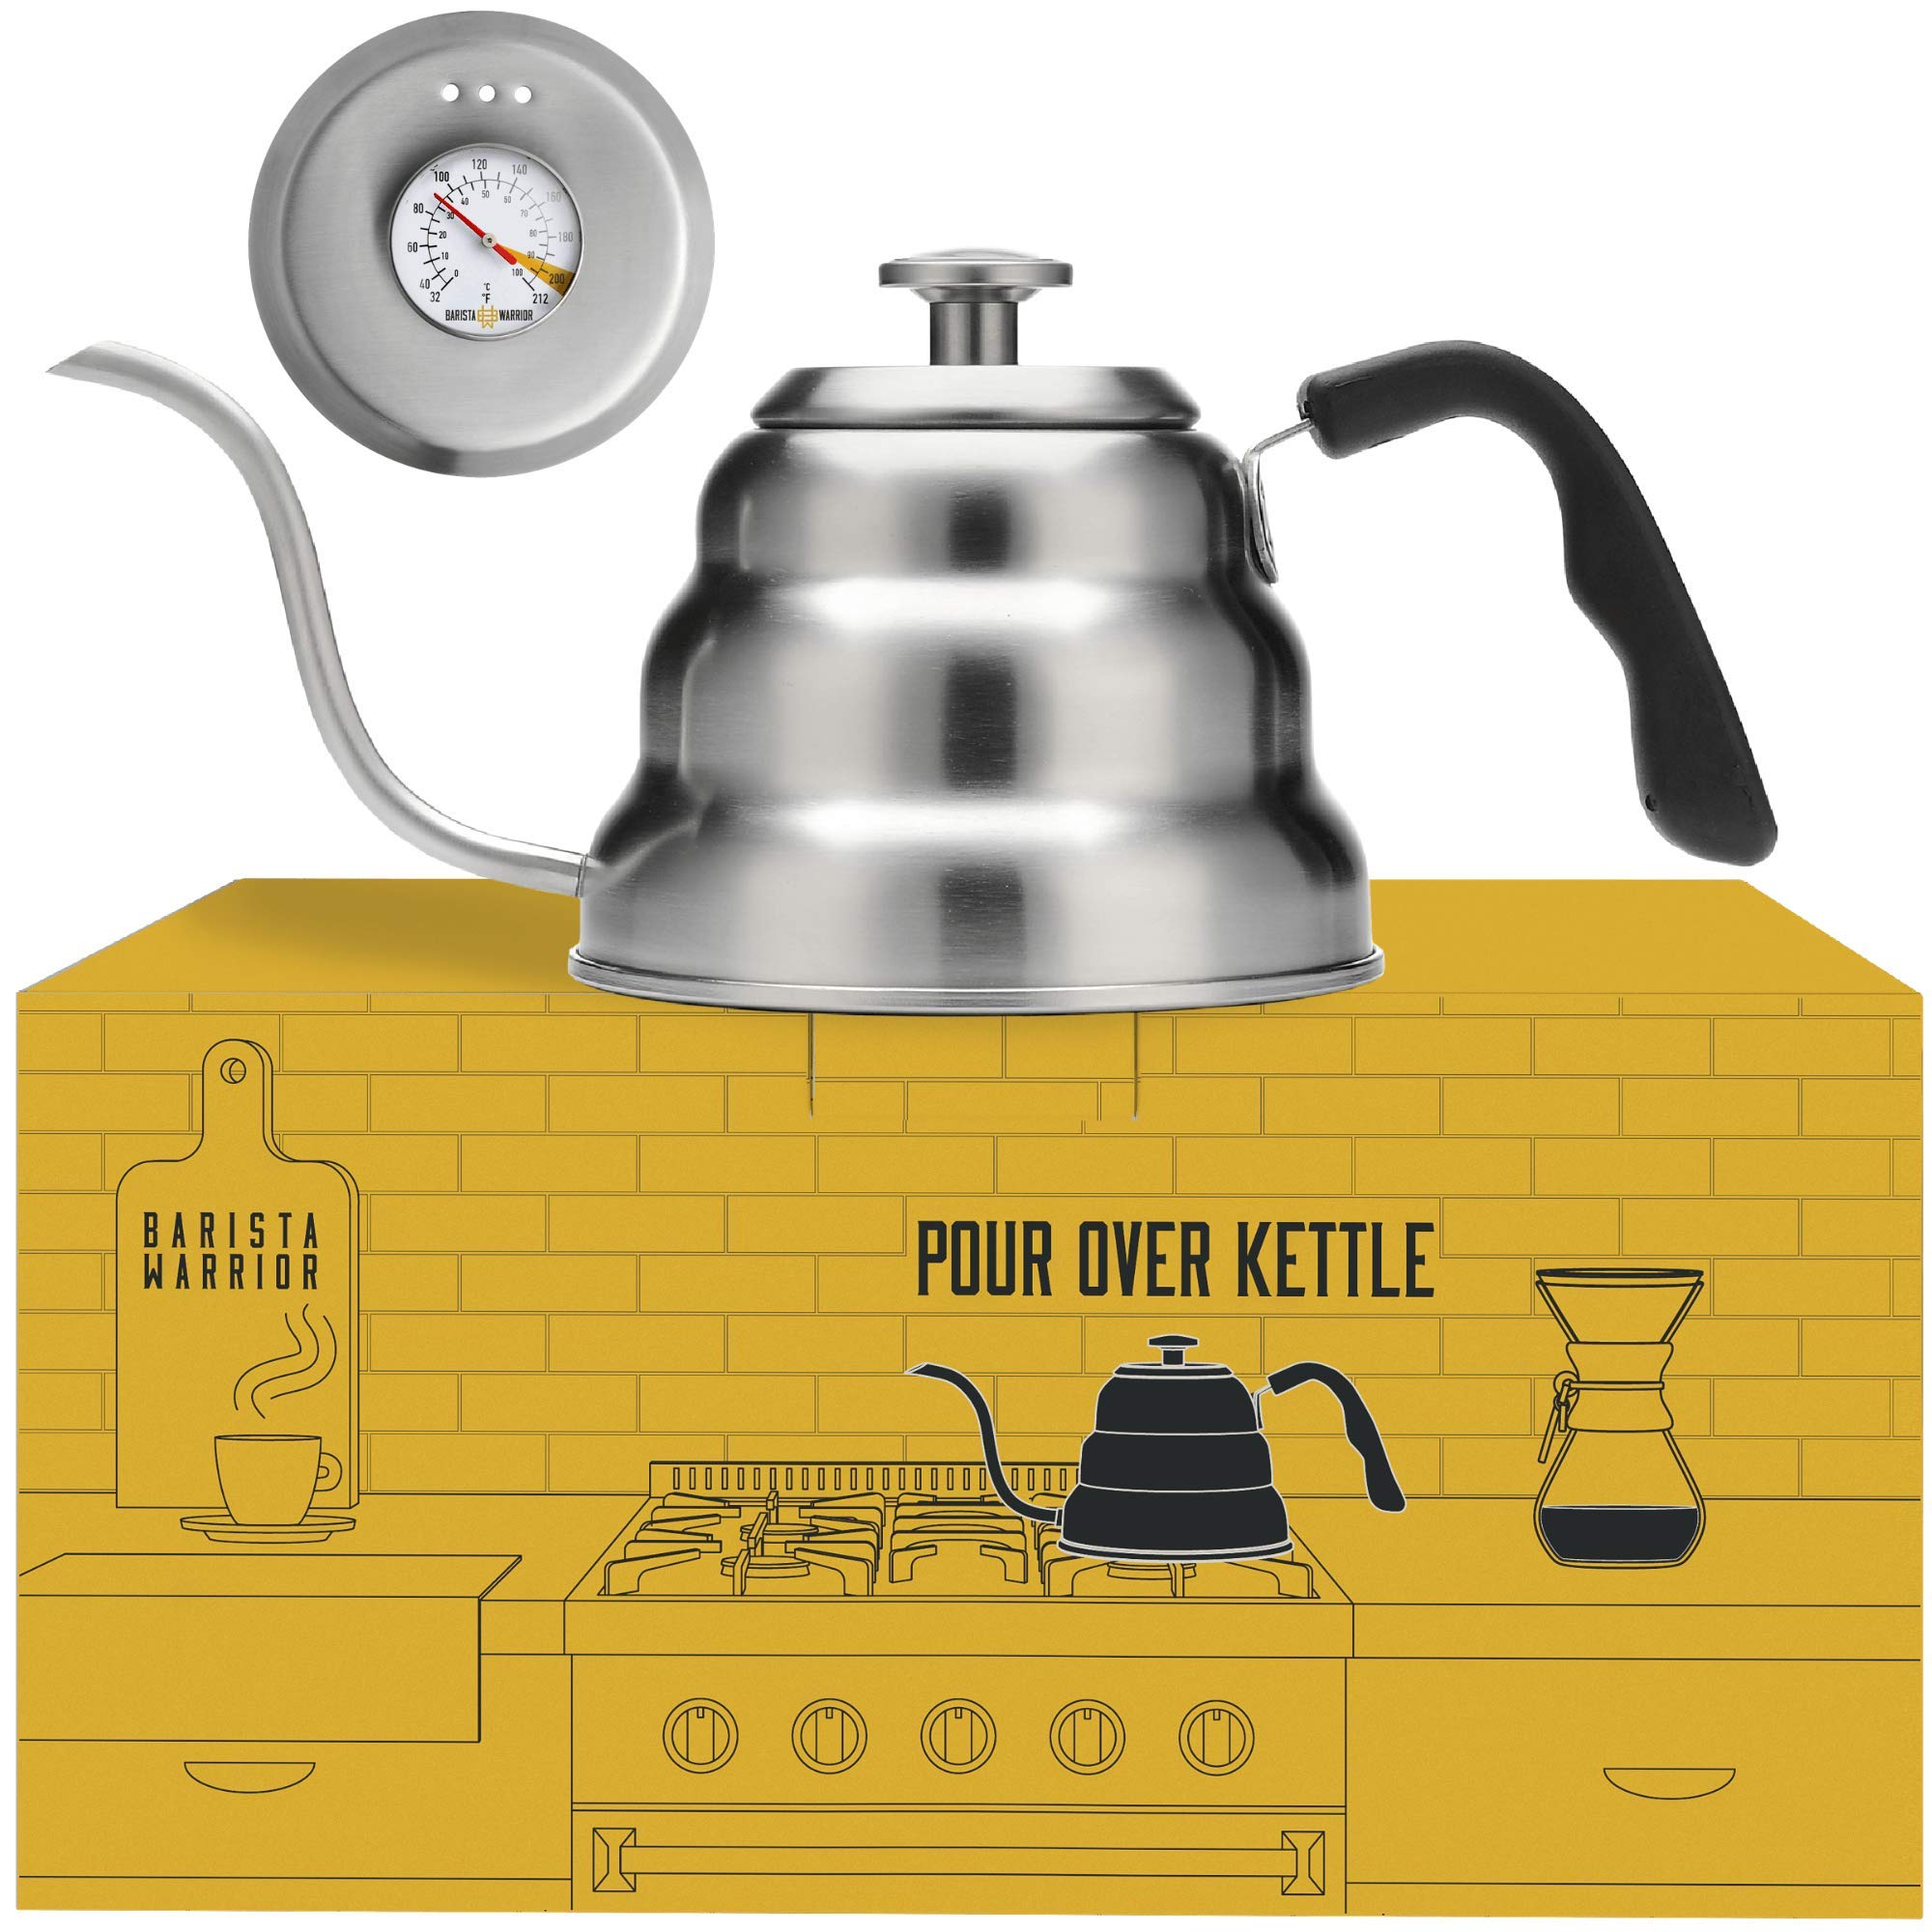 Pour Over Coffee Kettle with Thermometer for Exact Temperature - Gooseneck Pour Over Kettle for Drip Coffee and Tea (1.0 Liter | 34 fl oz) by Barista Warrior